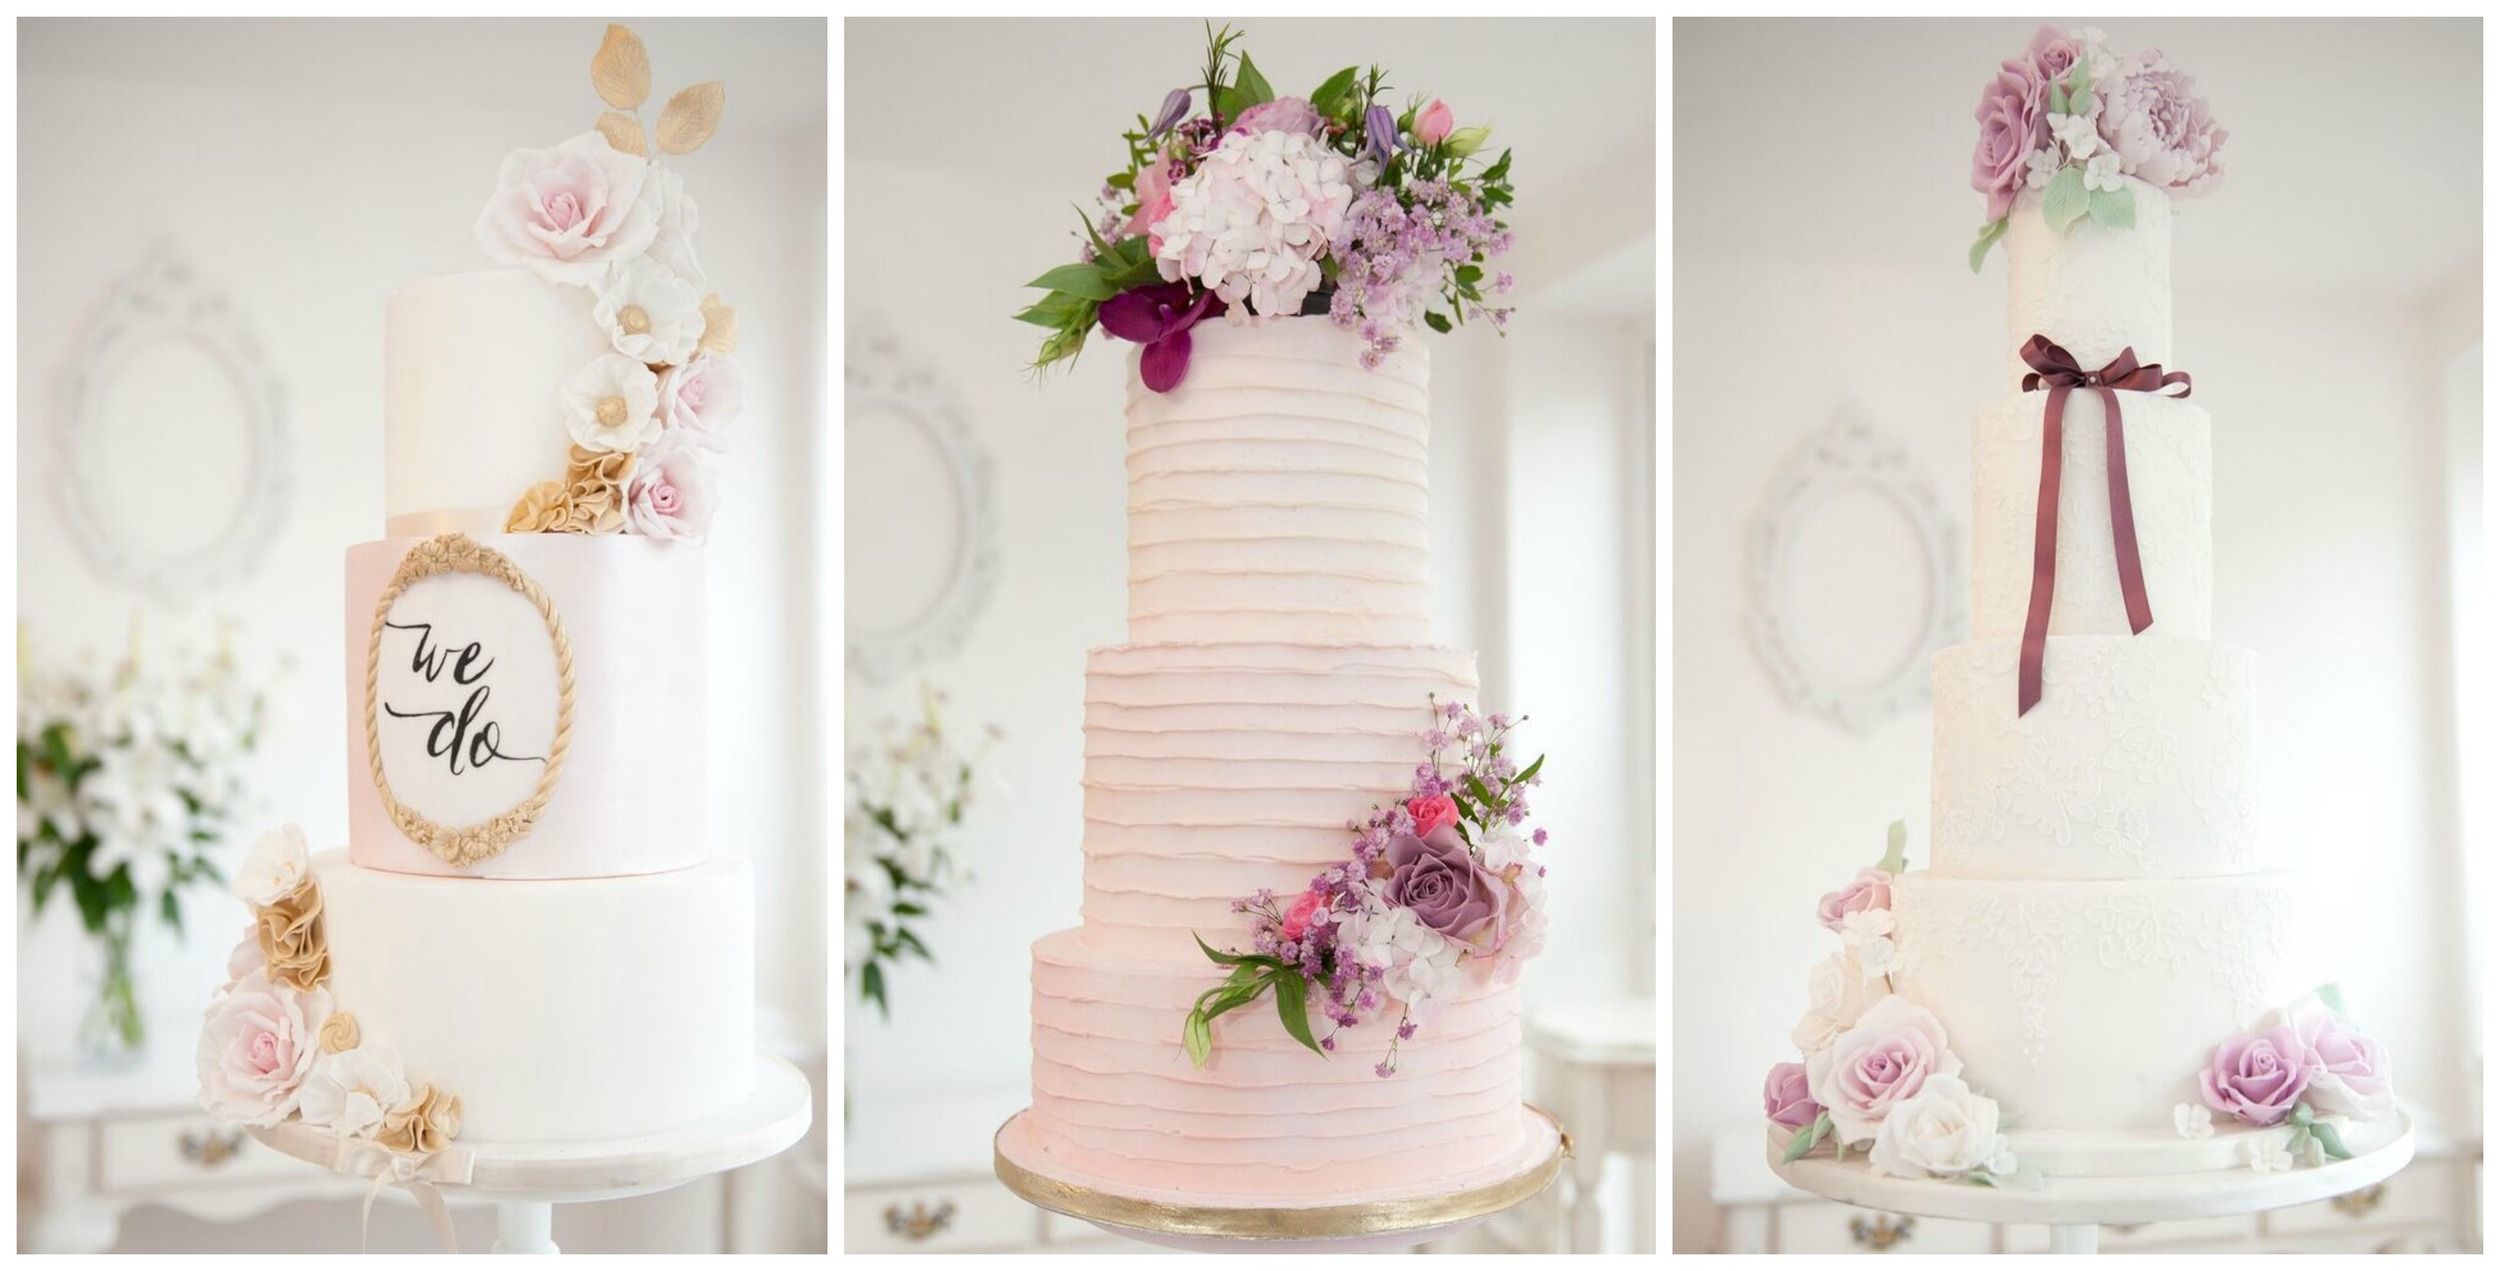 Cake Designers Exeter